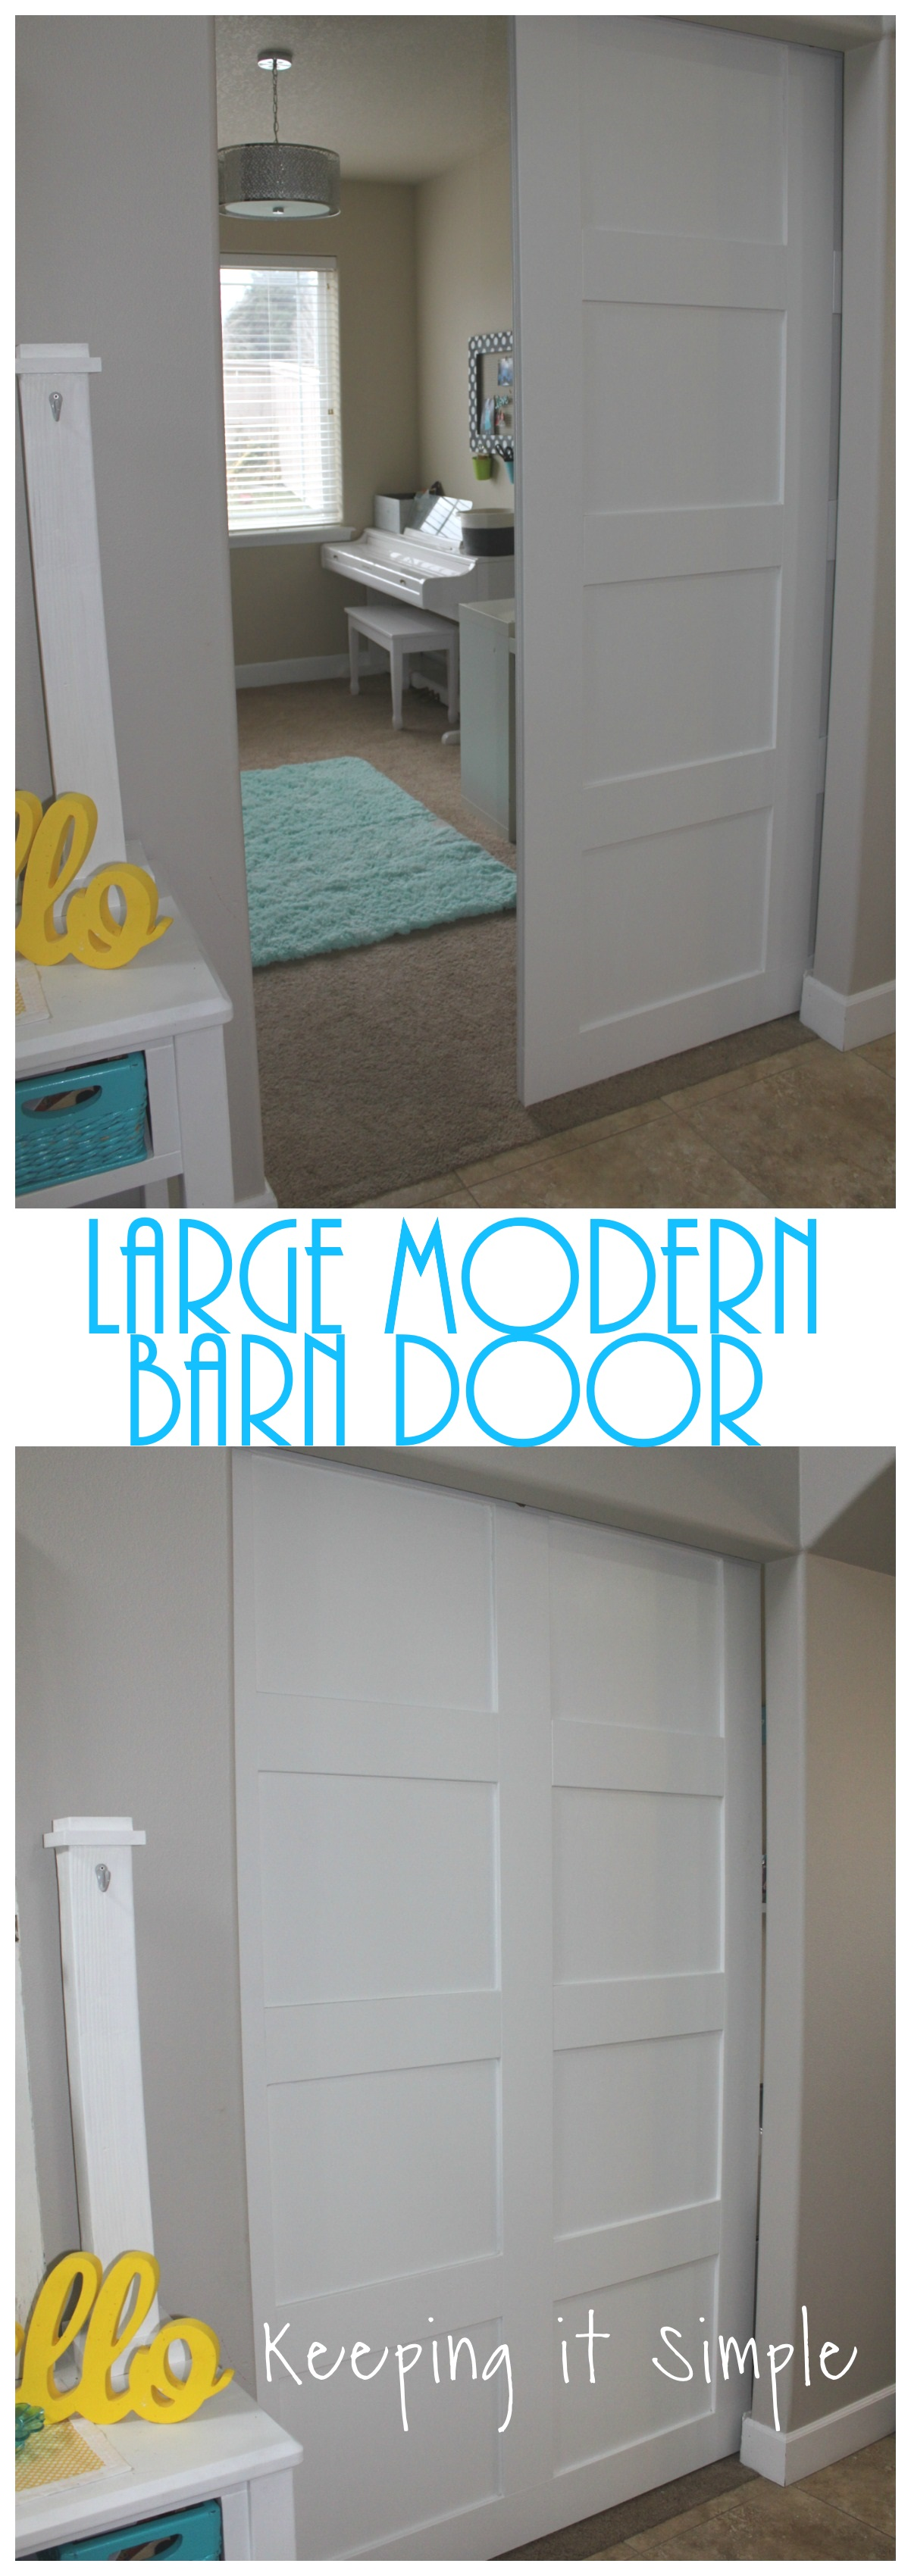 How To Build A Large Modern Barn Door Keeping It Simple